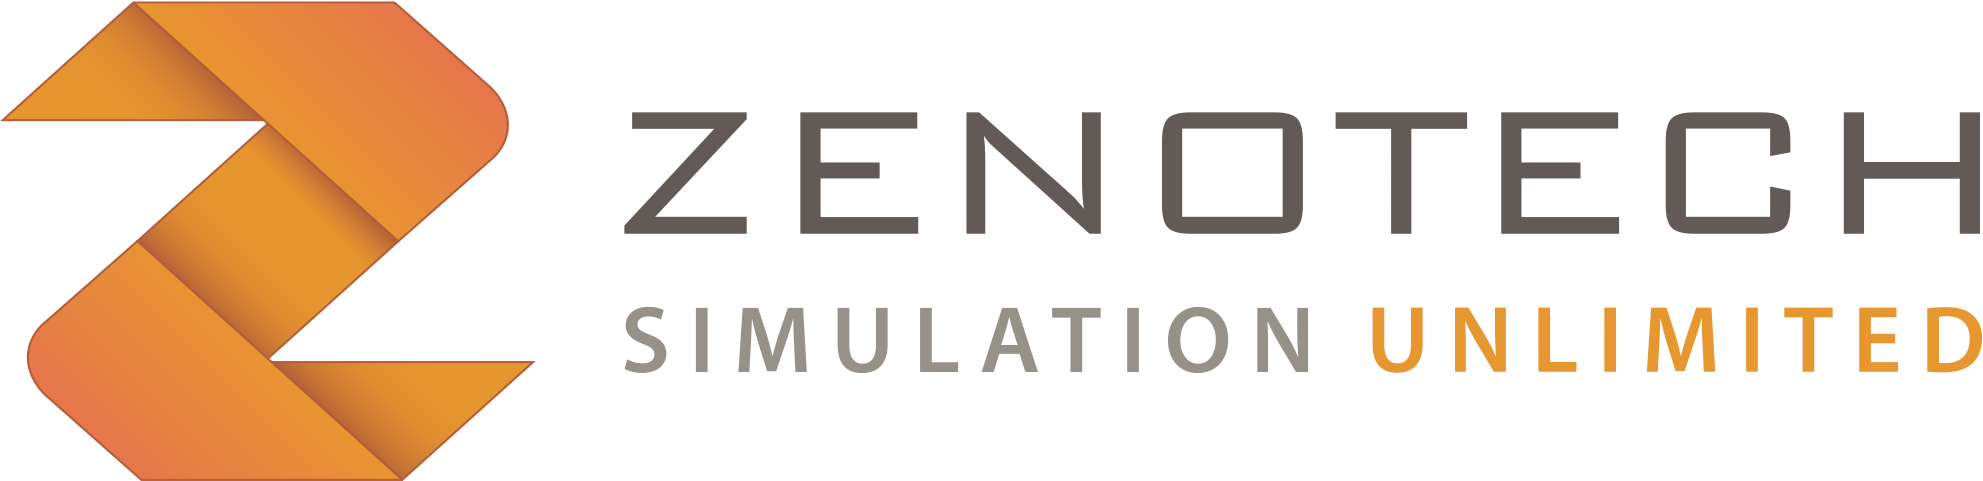 Zenotech Simulation Unlimited